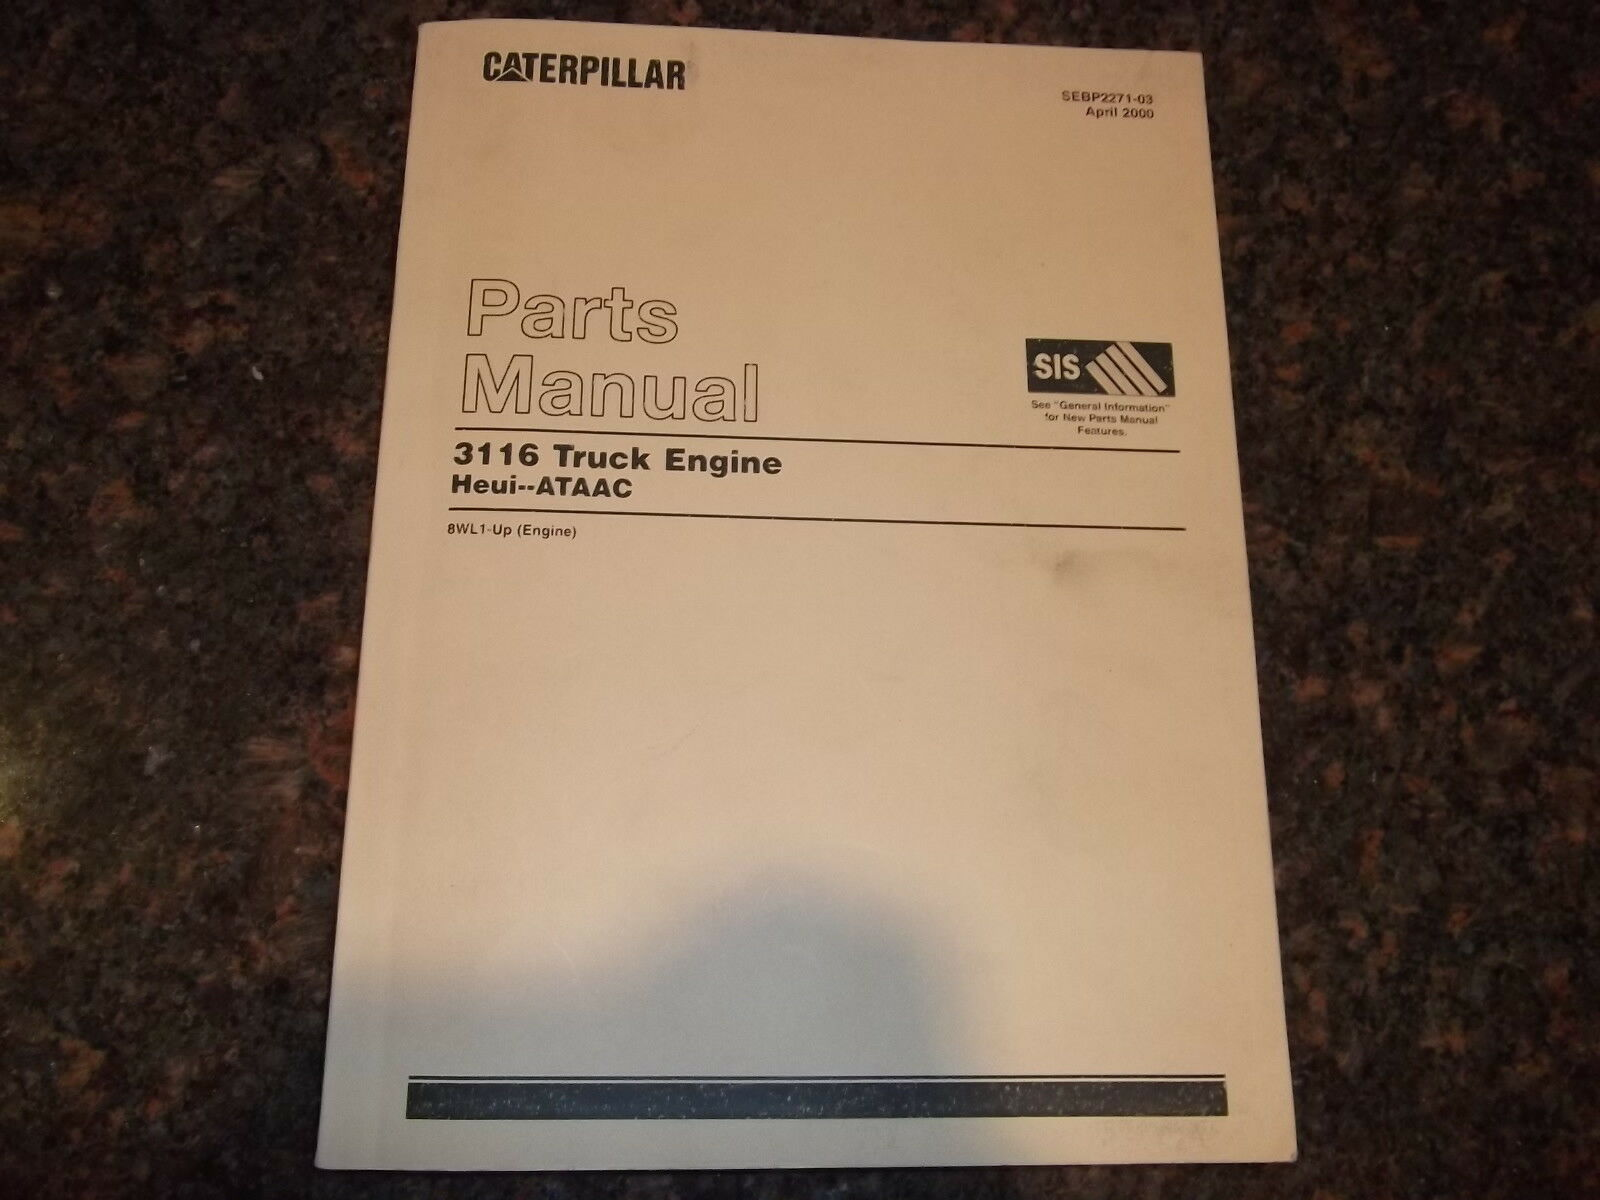 hight resolution of cat caterpillar 3116 truck engine parts book manual s n 8wl1 up 1 of